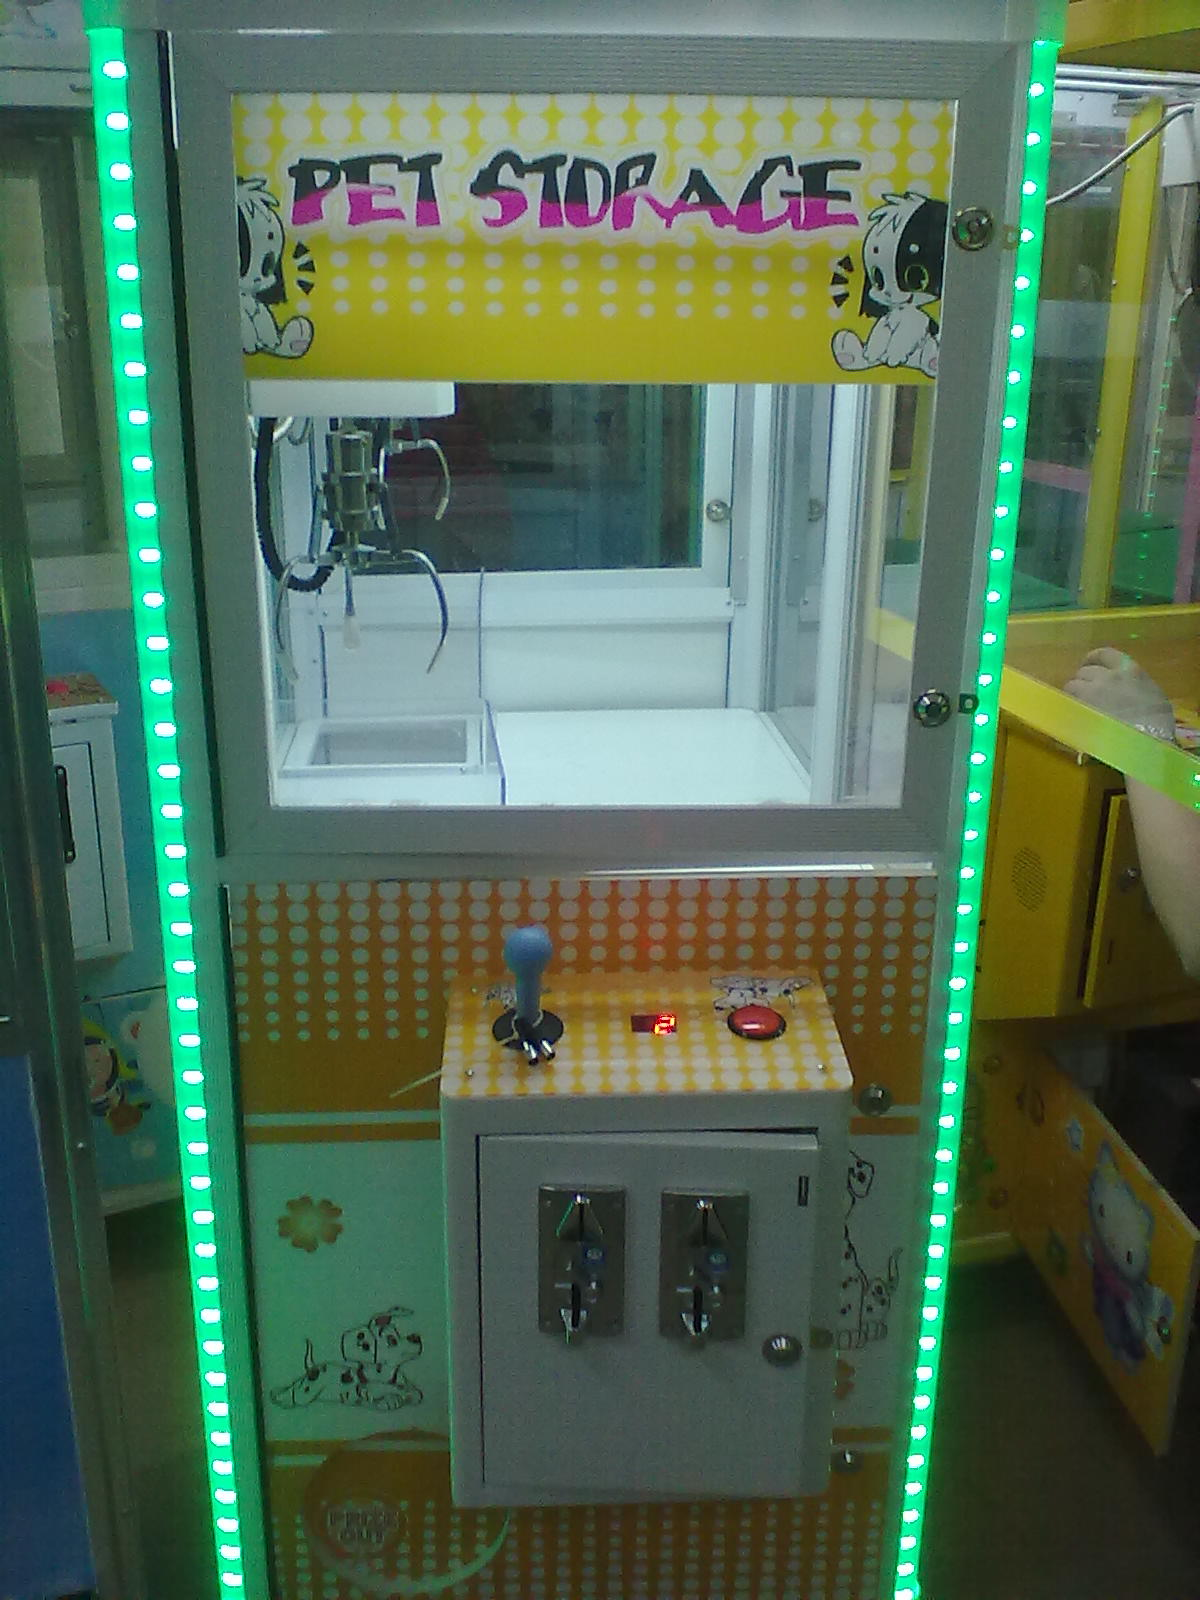 Small Crane machine